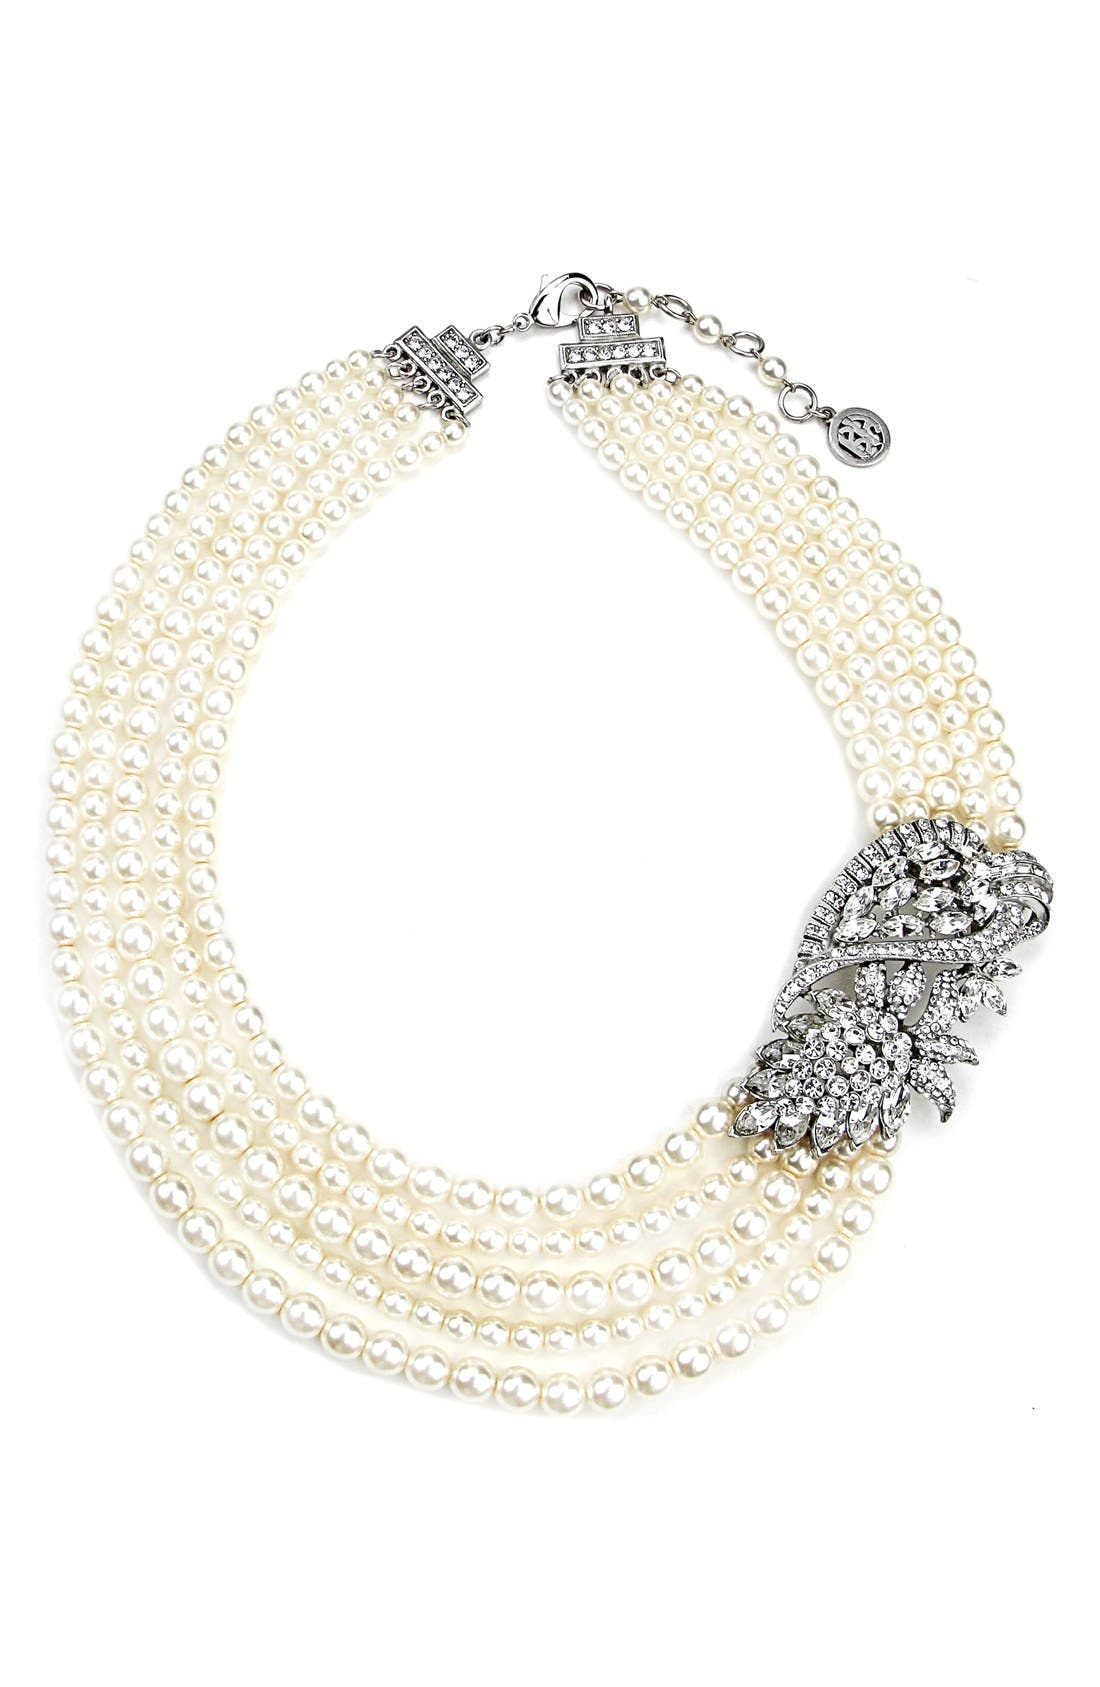 Alternate Image 1 Selected - Ben-Amun Faux Pearl Statement Necklace